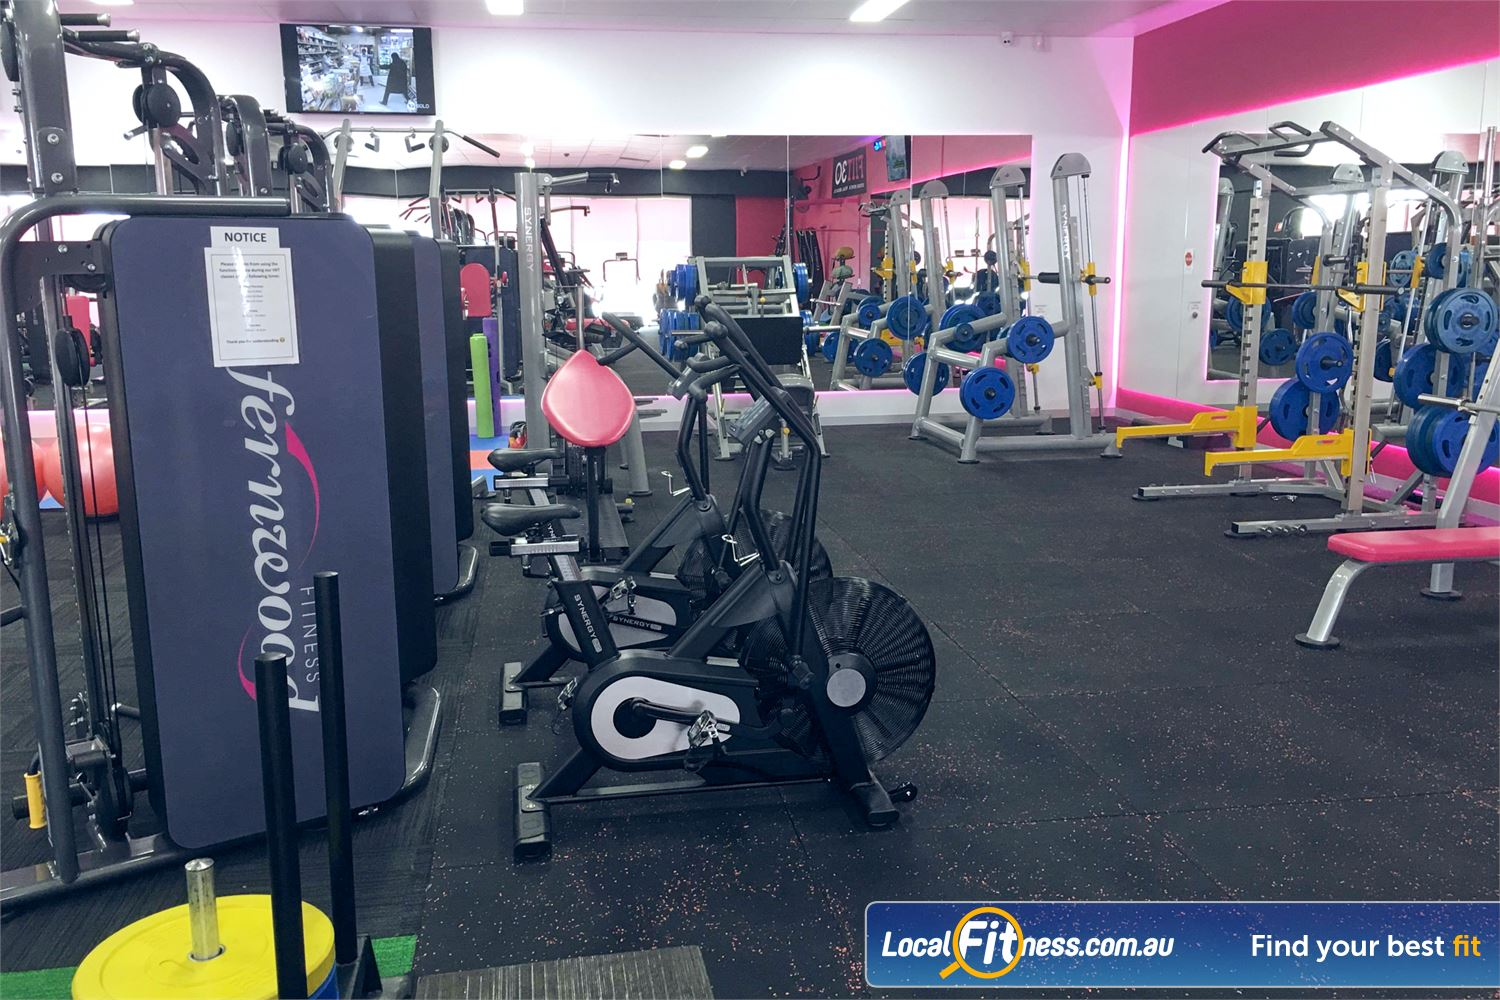 Fernwood Fitness Near Robina Town Centre Get a cardio HIIT workout with our Synergy Air Bionic Bikes.